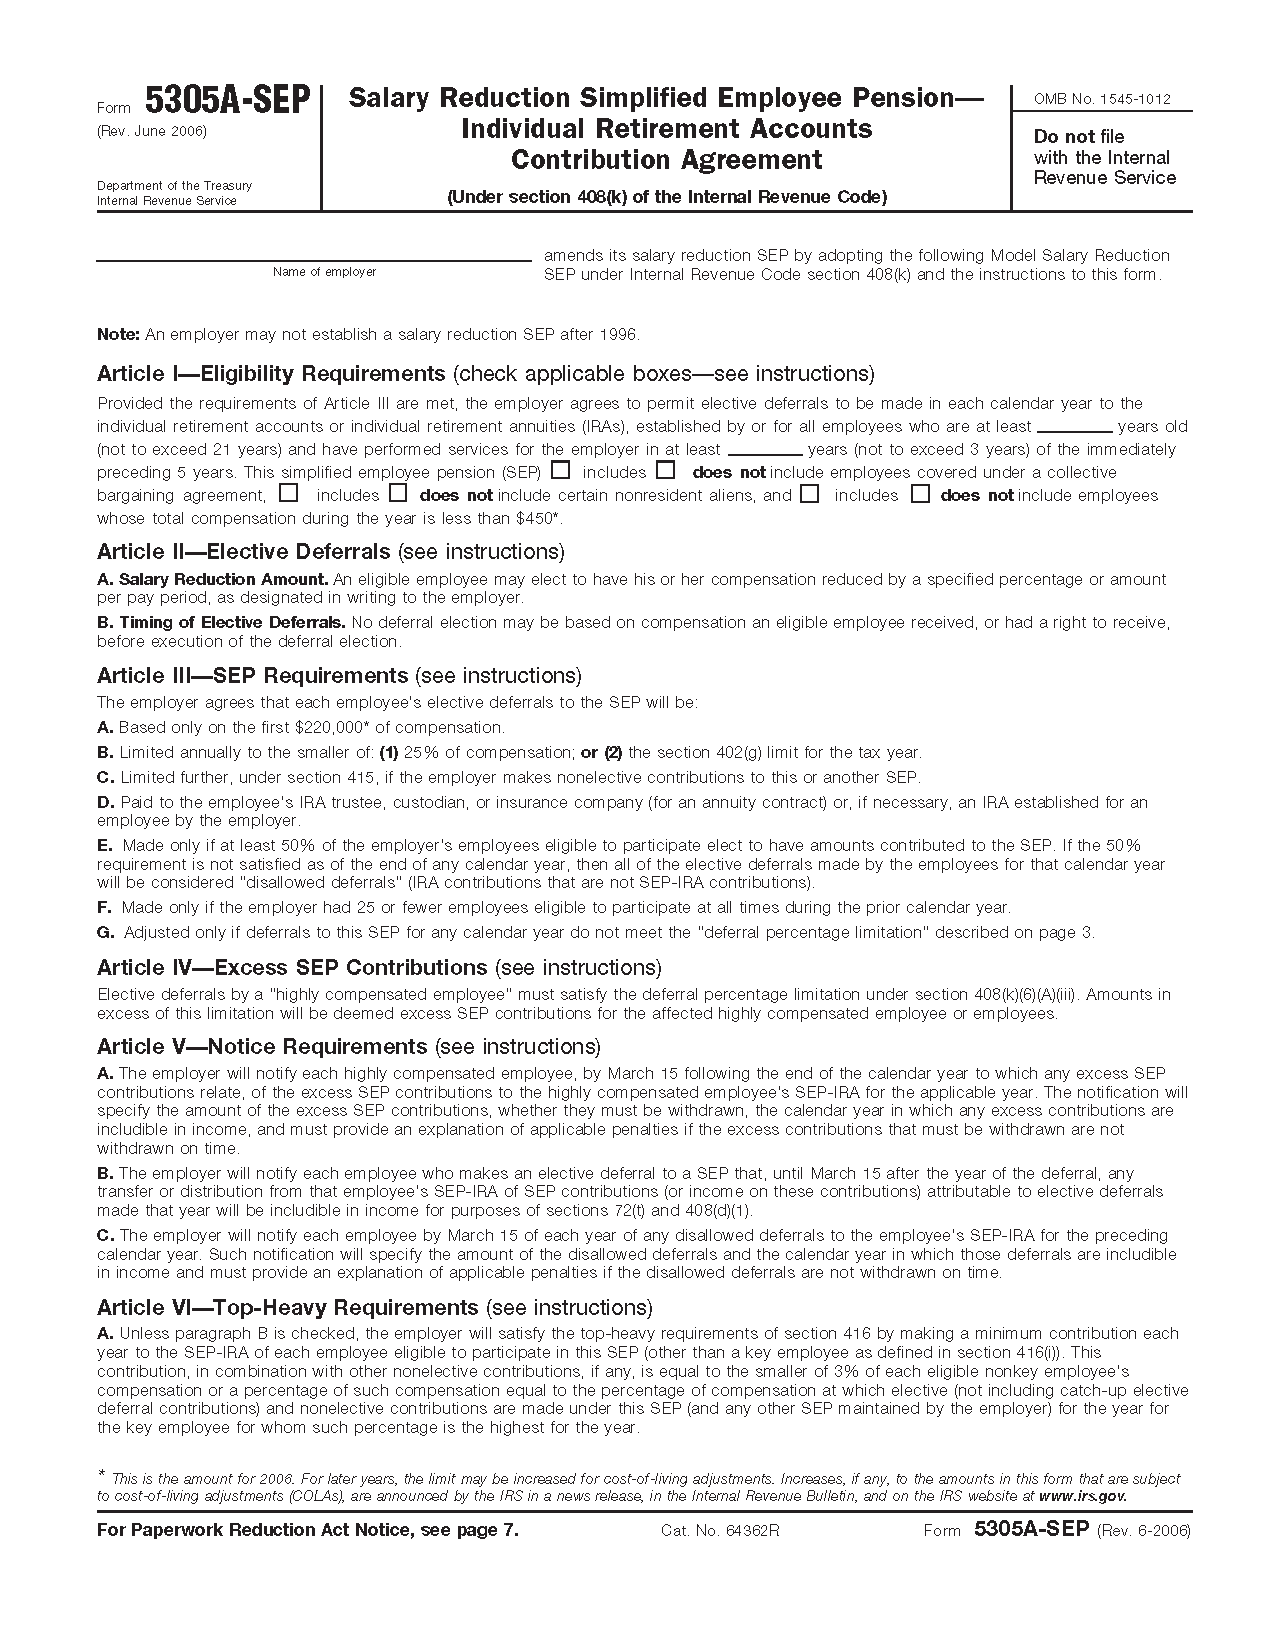 Form 5305-A-SEP Salary Reduction and Other Elective ...